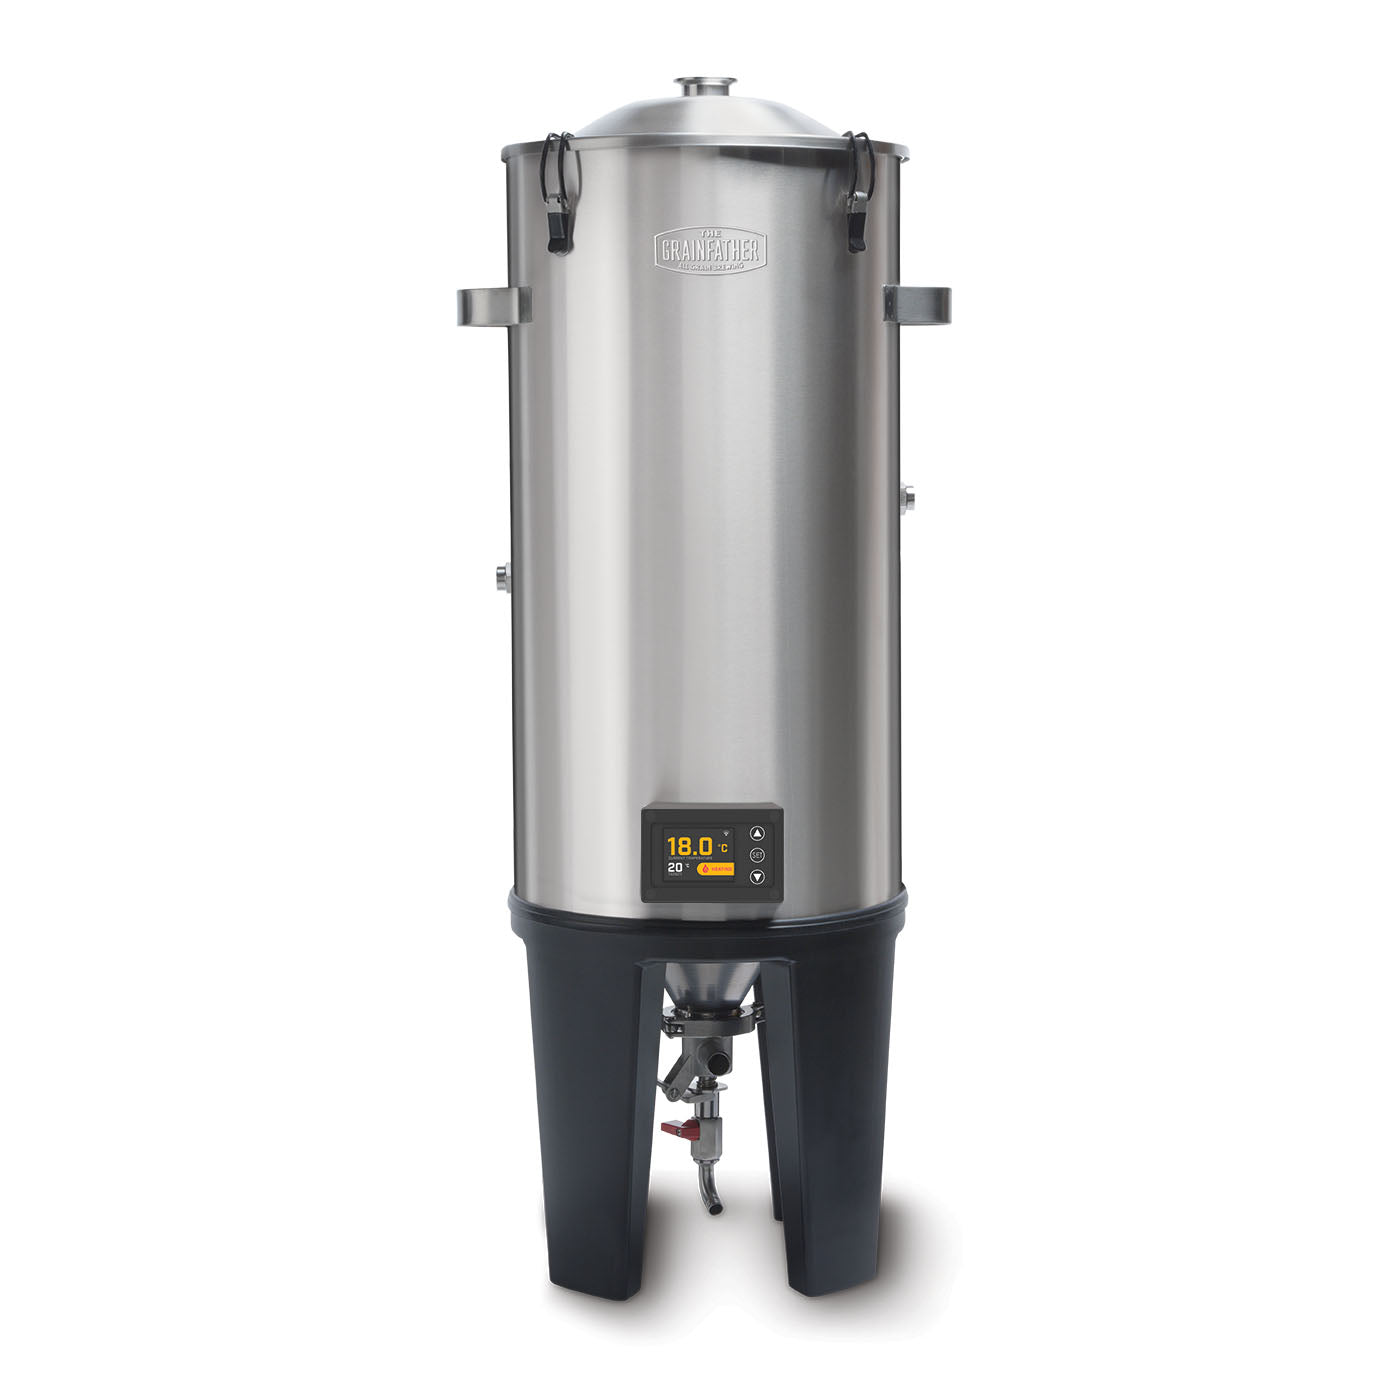 Grainfather Conical Fermenter Pro